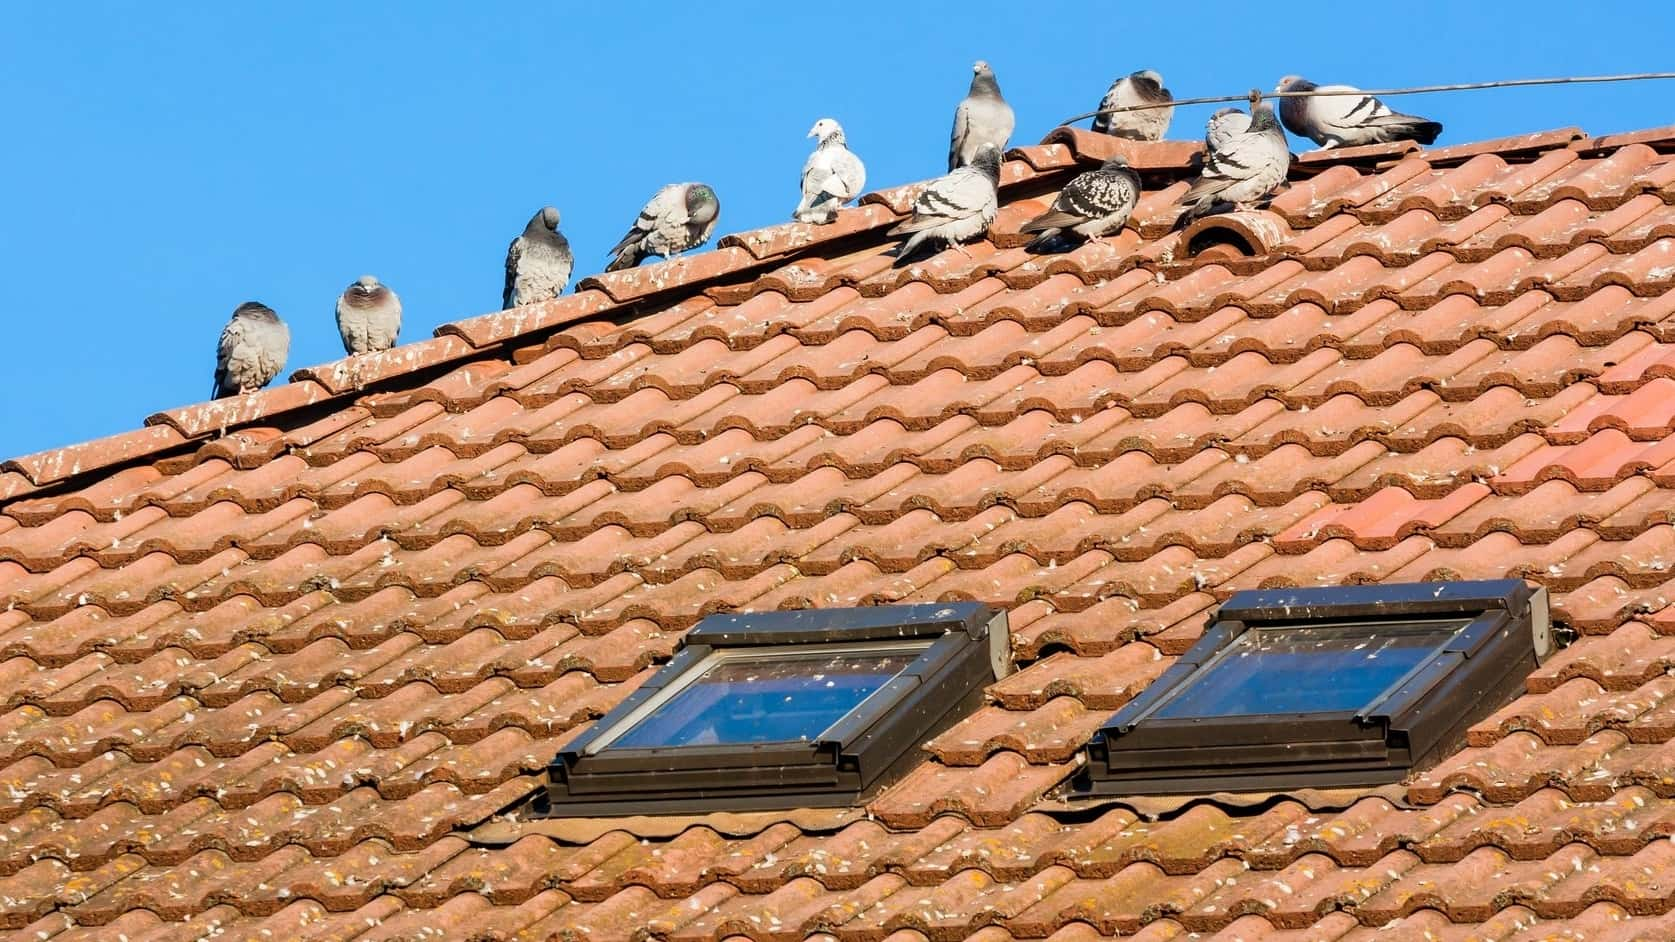 birds on roof